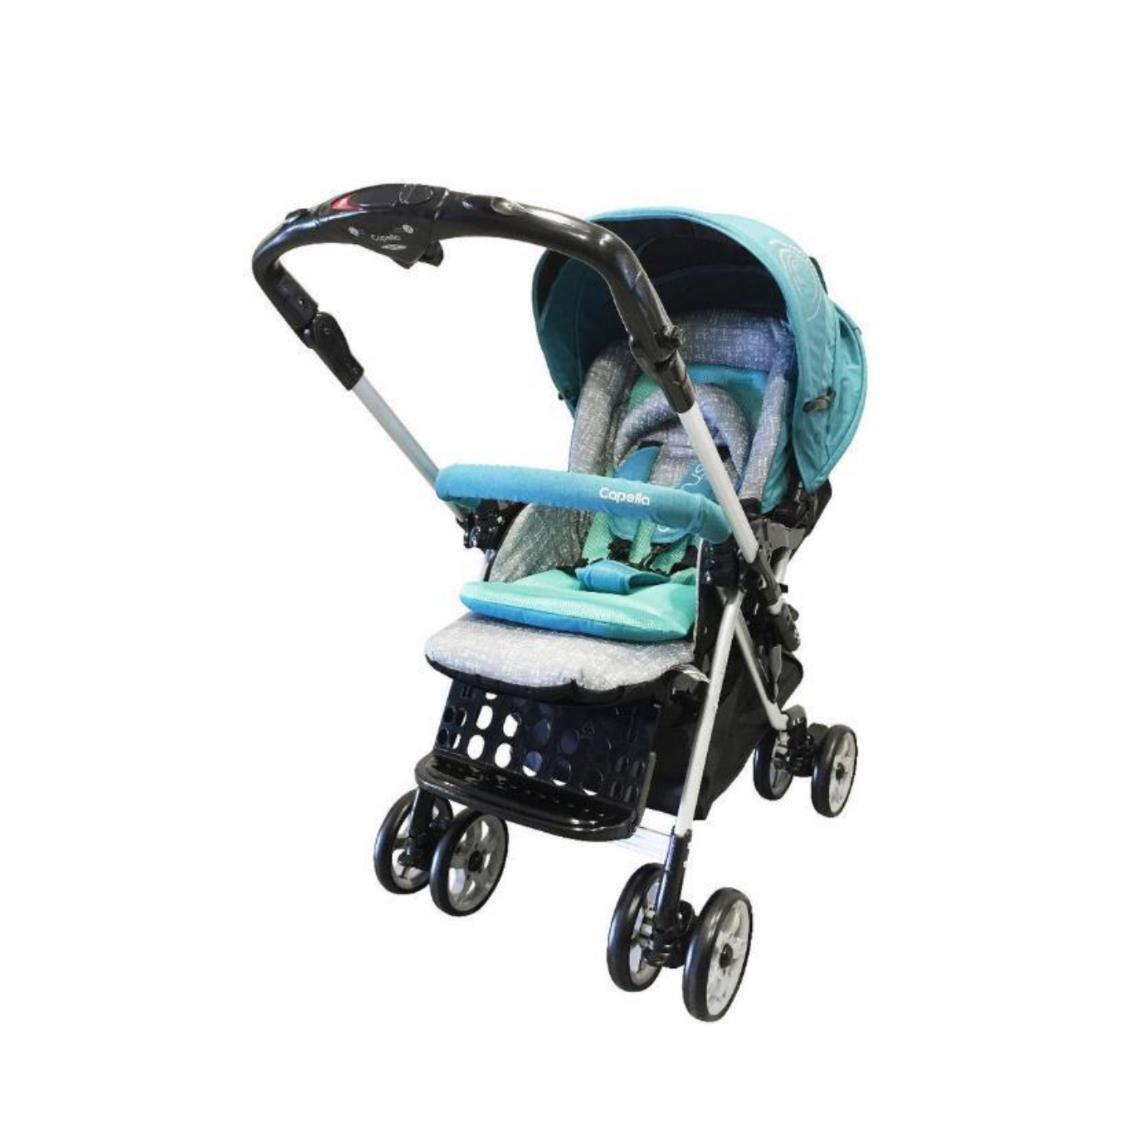 Adonis Travel System Stroller Blue Weight 860 kg